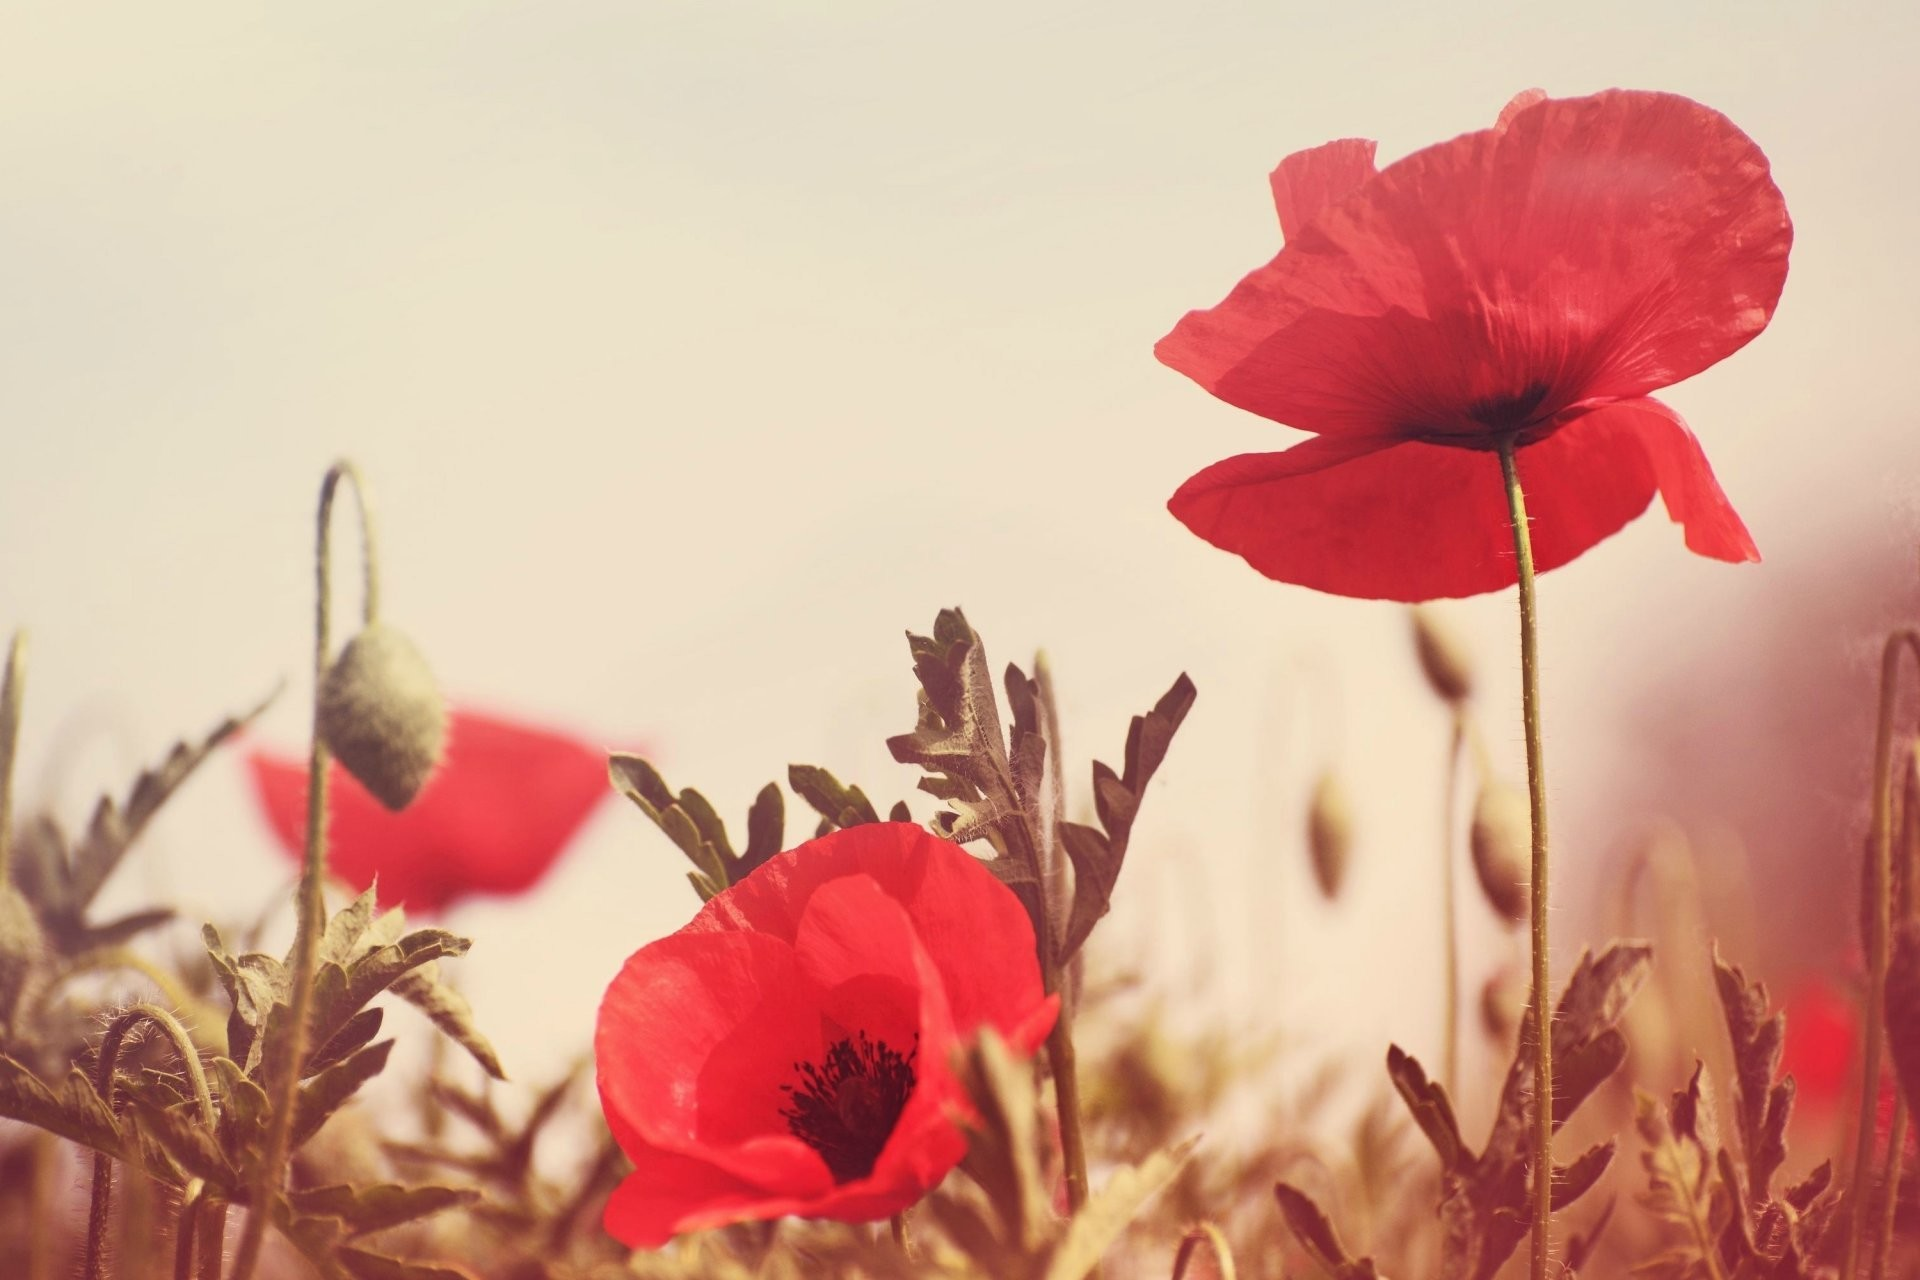 1920x1280 flower flowers poppy red the field green background wallpaper widescreen  full screen hd wallpapers